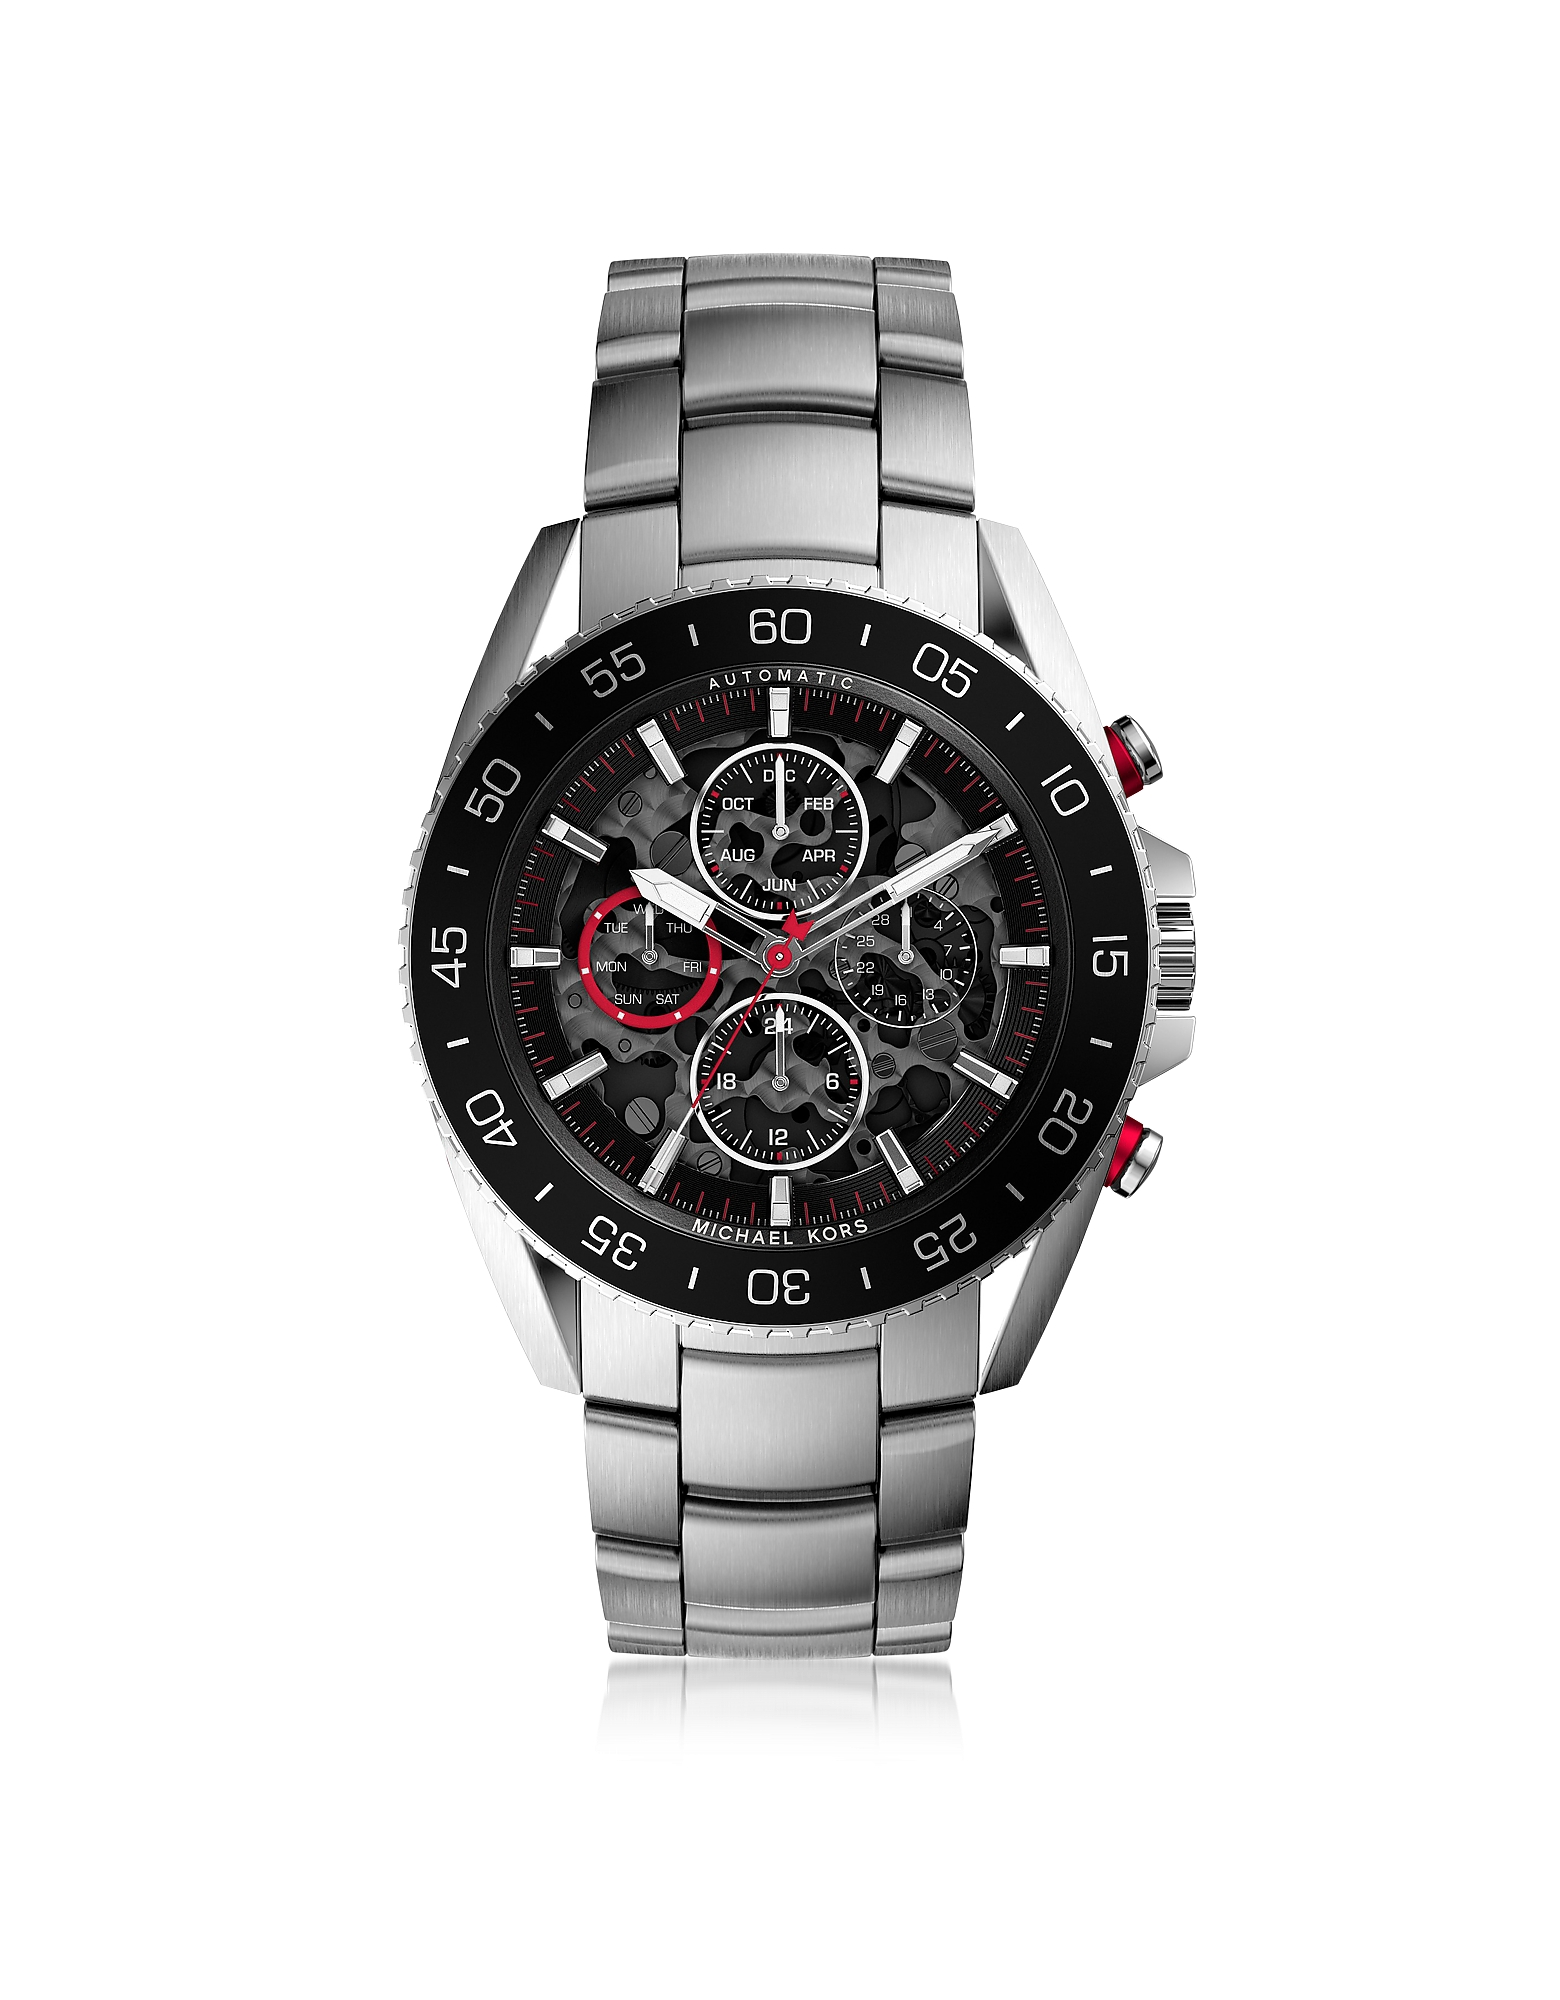 Michael Kors Men's Watches, Jetmaster Silver Tone Stainless Steel Men's Chrono Watch